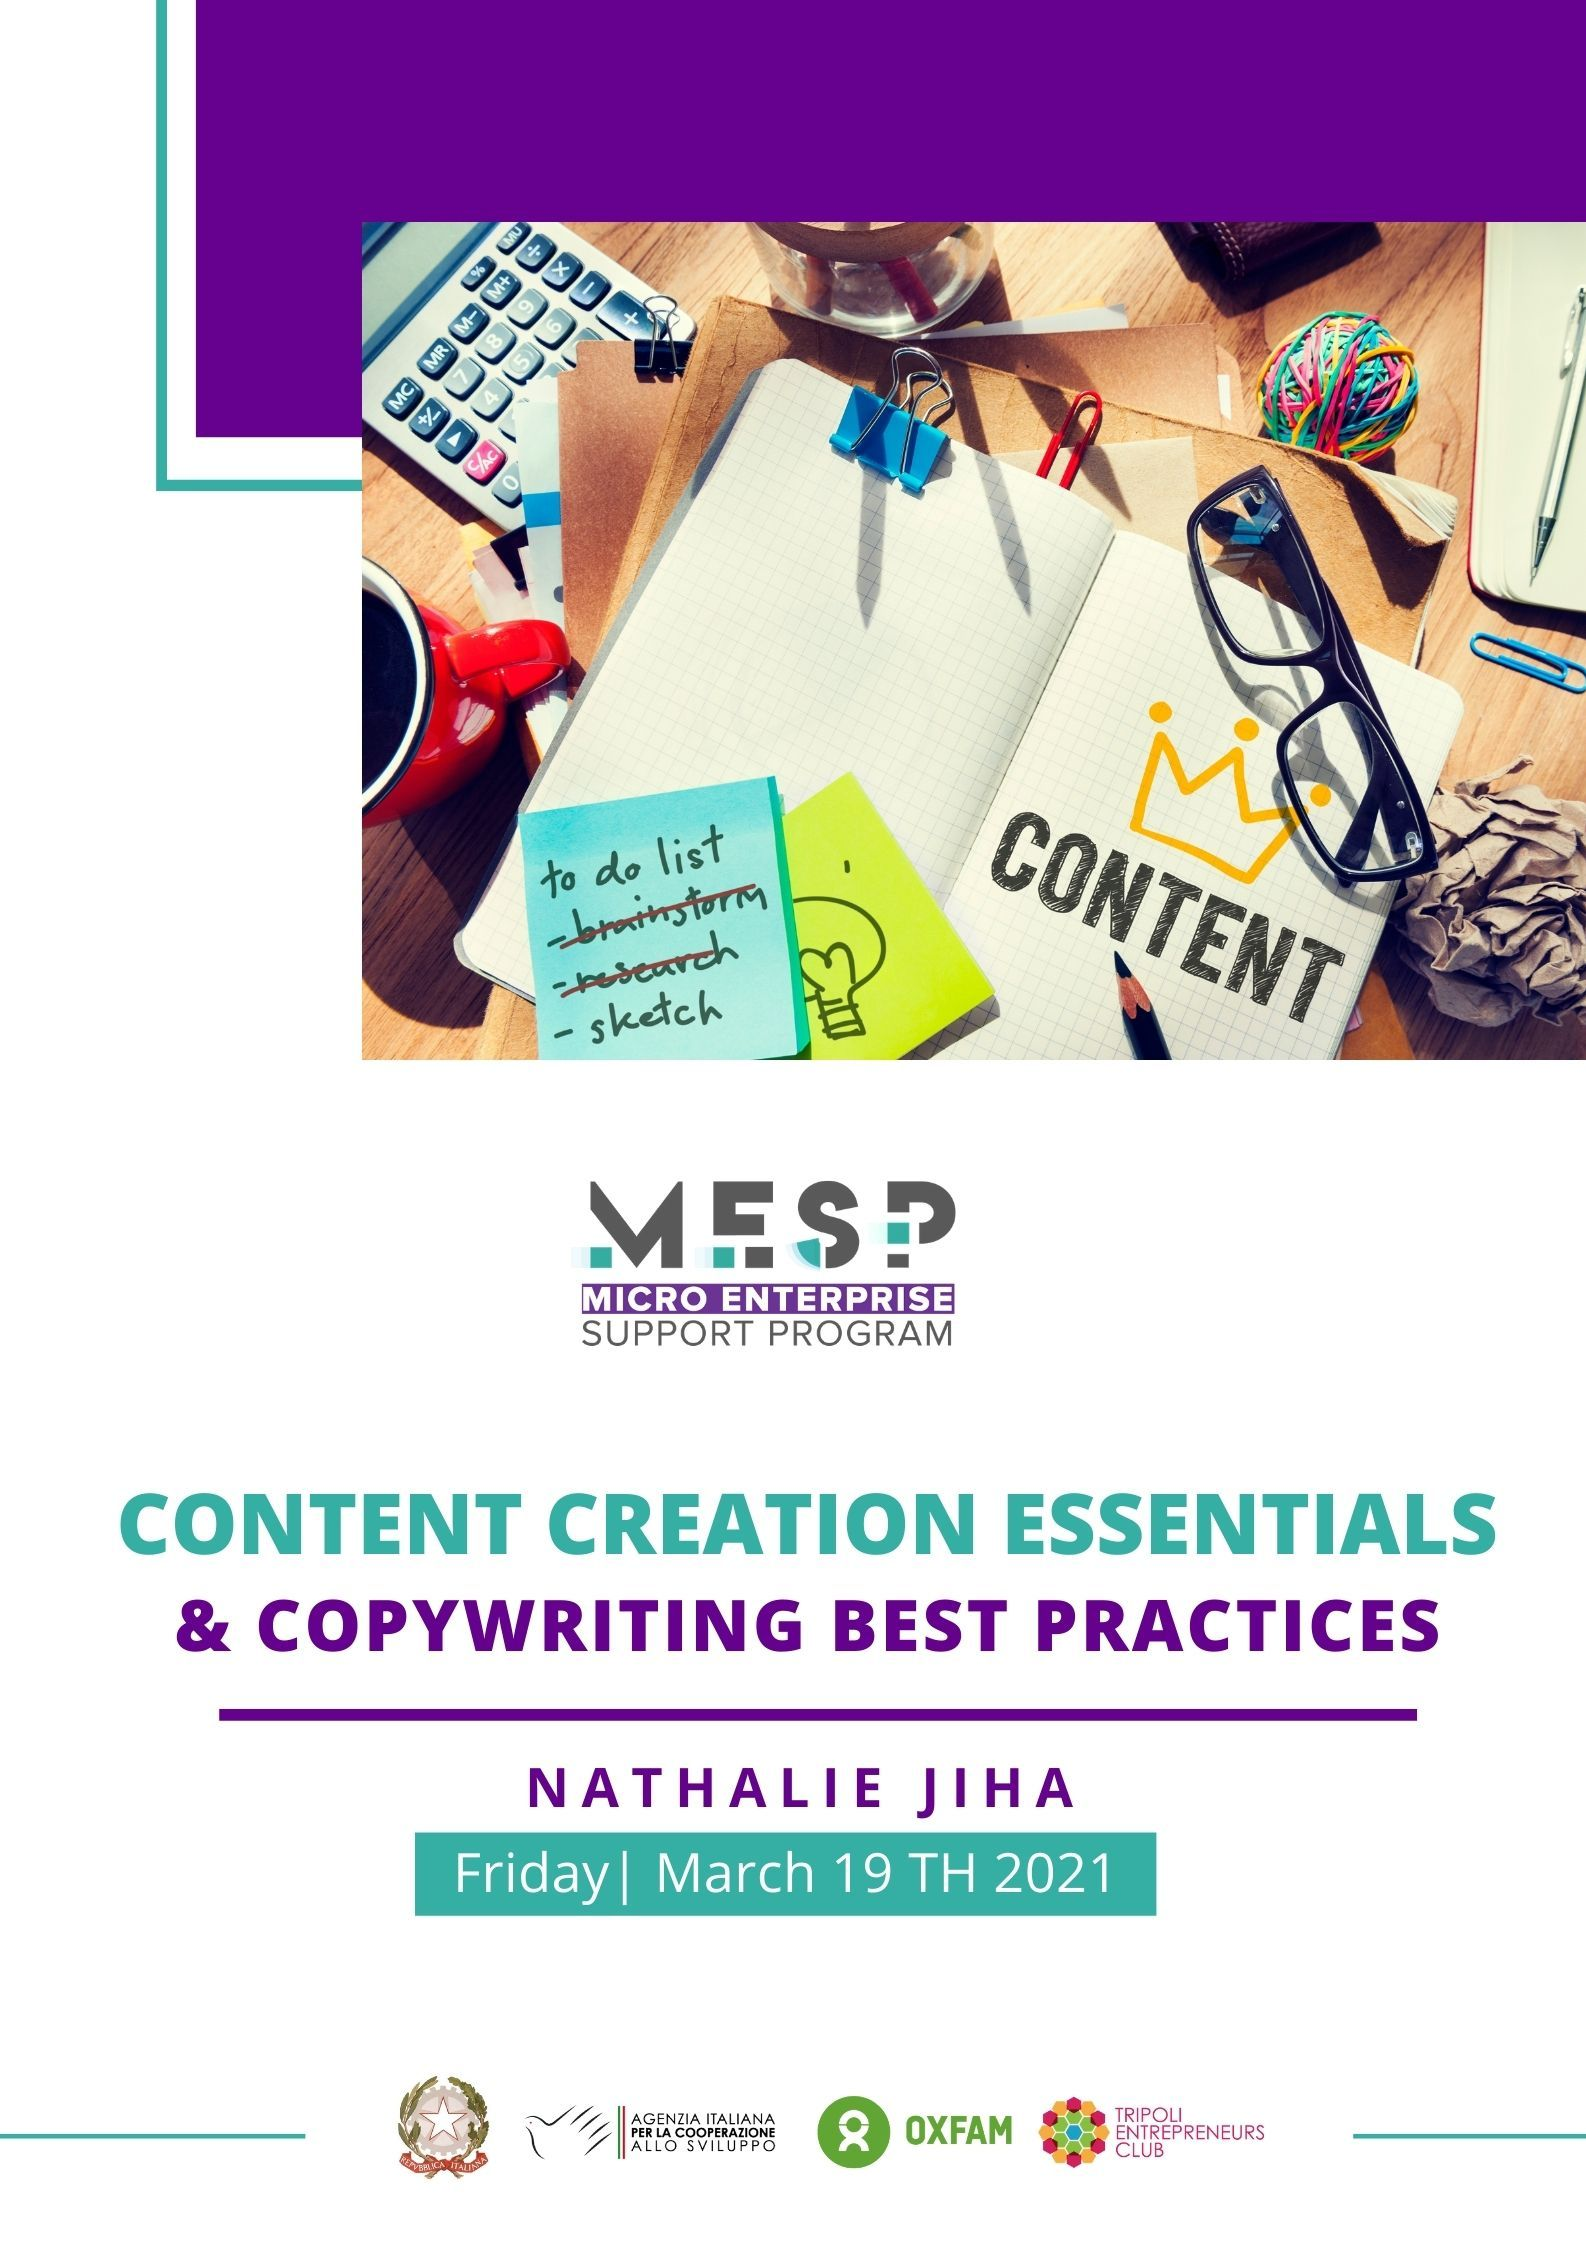 Content Creation Workshop in North Lebanon